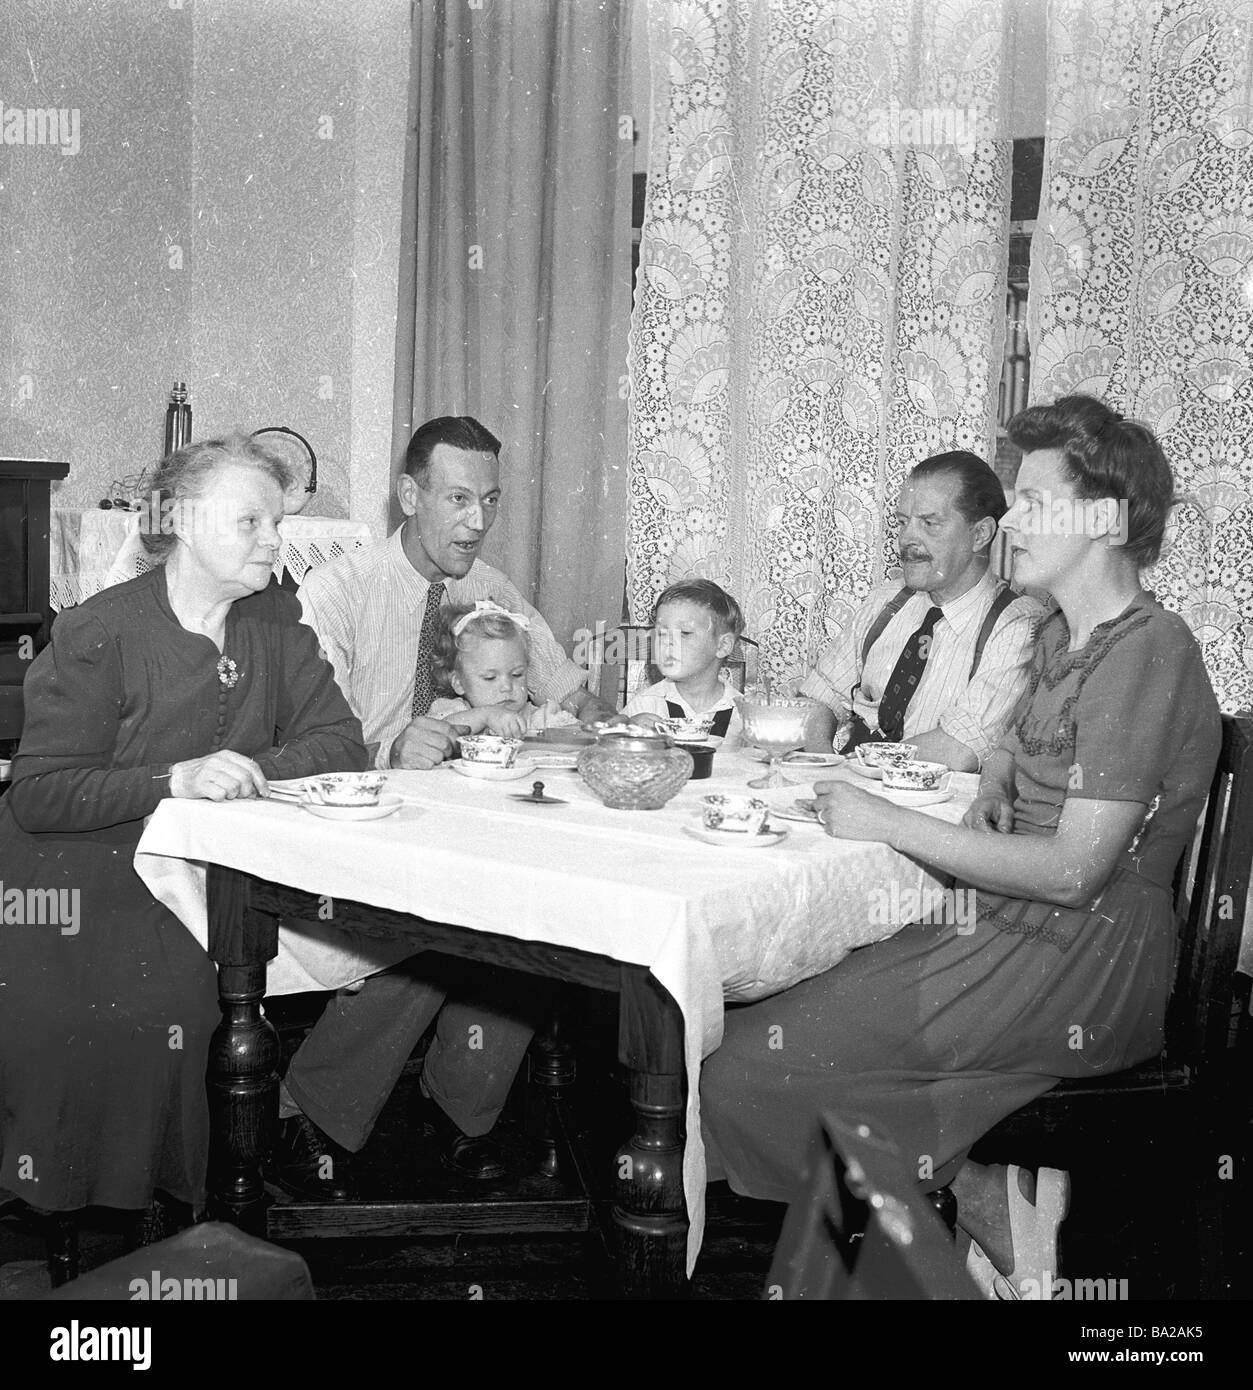 1000+ images about 1950s family life on Pinterest ...  1950s Family Life